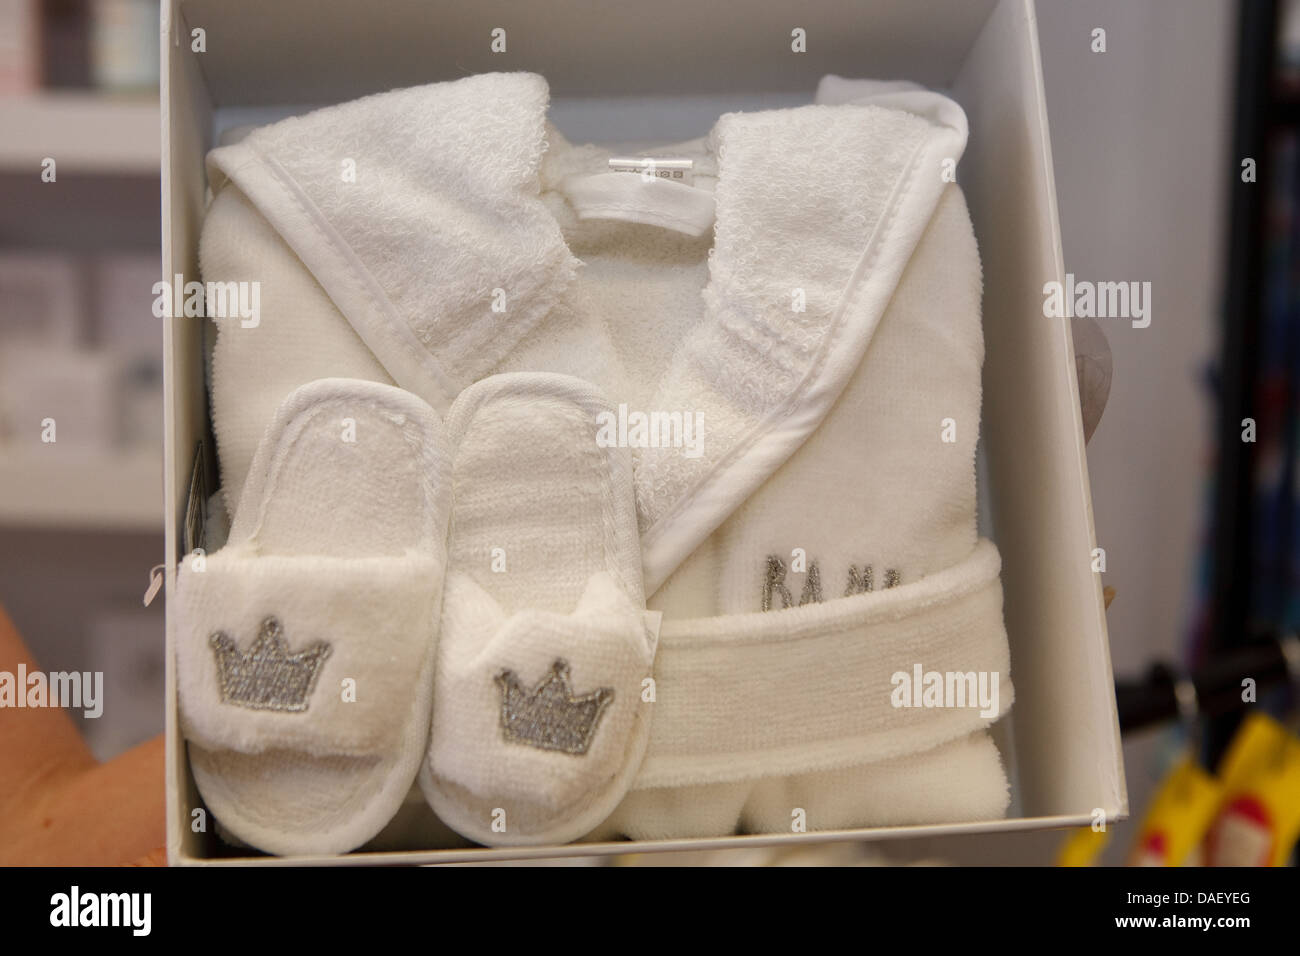 Royal Baby keepsakes, a dressing gown and slippers set complete ...